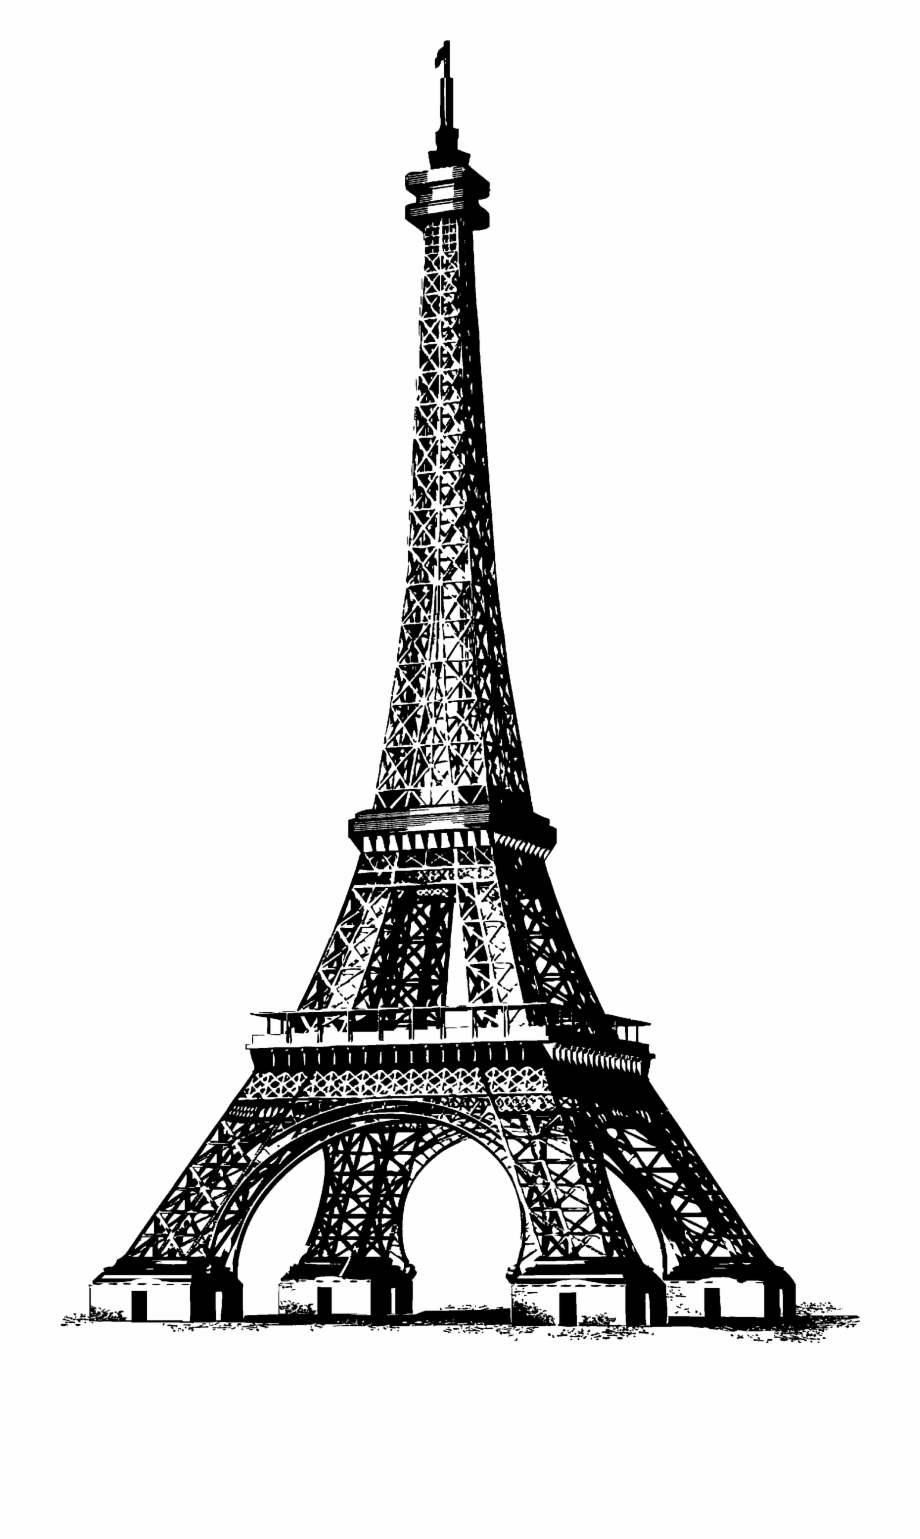 Transparent eiffel tower clipart transparent library Eiffel Tower Free Download Clip Art Free Clip Art - Transparent ... transparent library